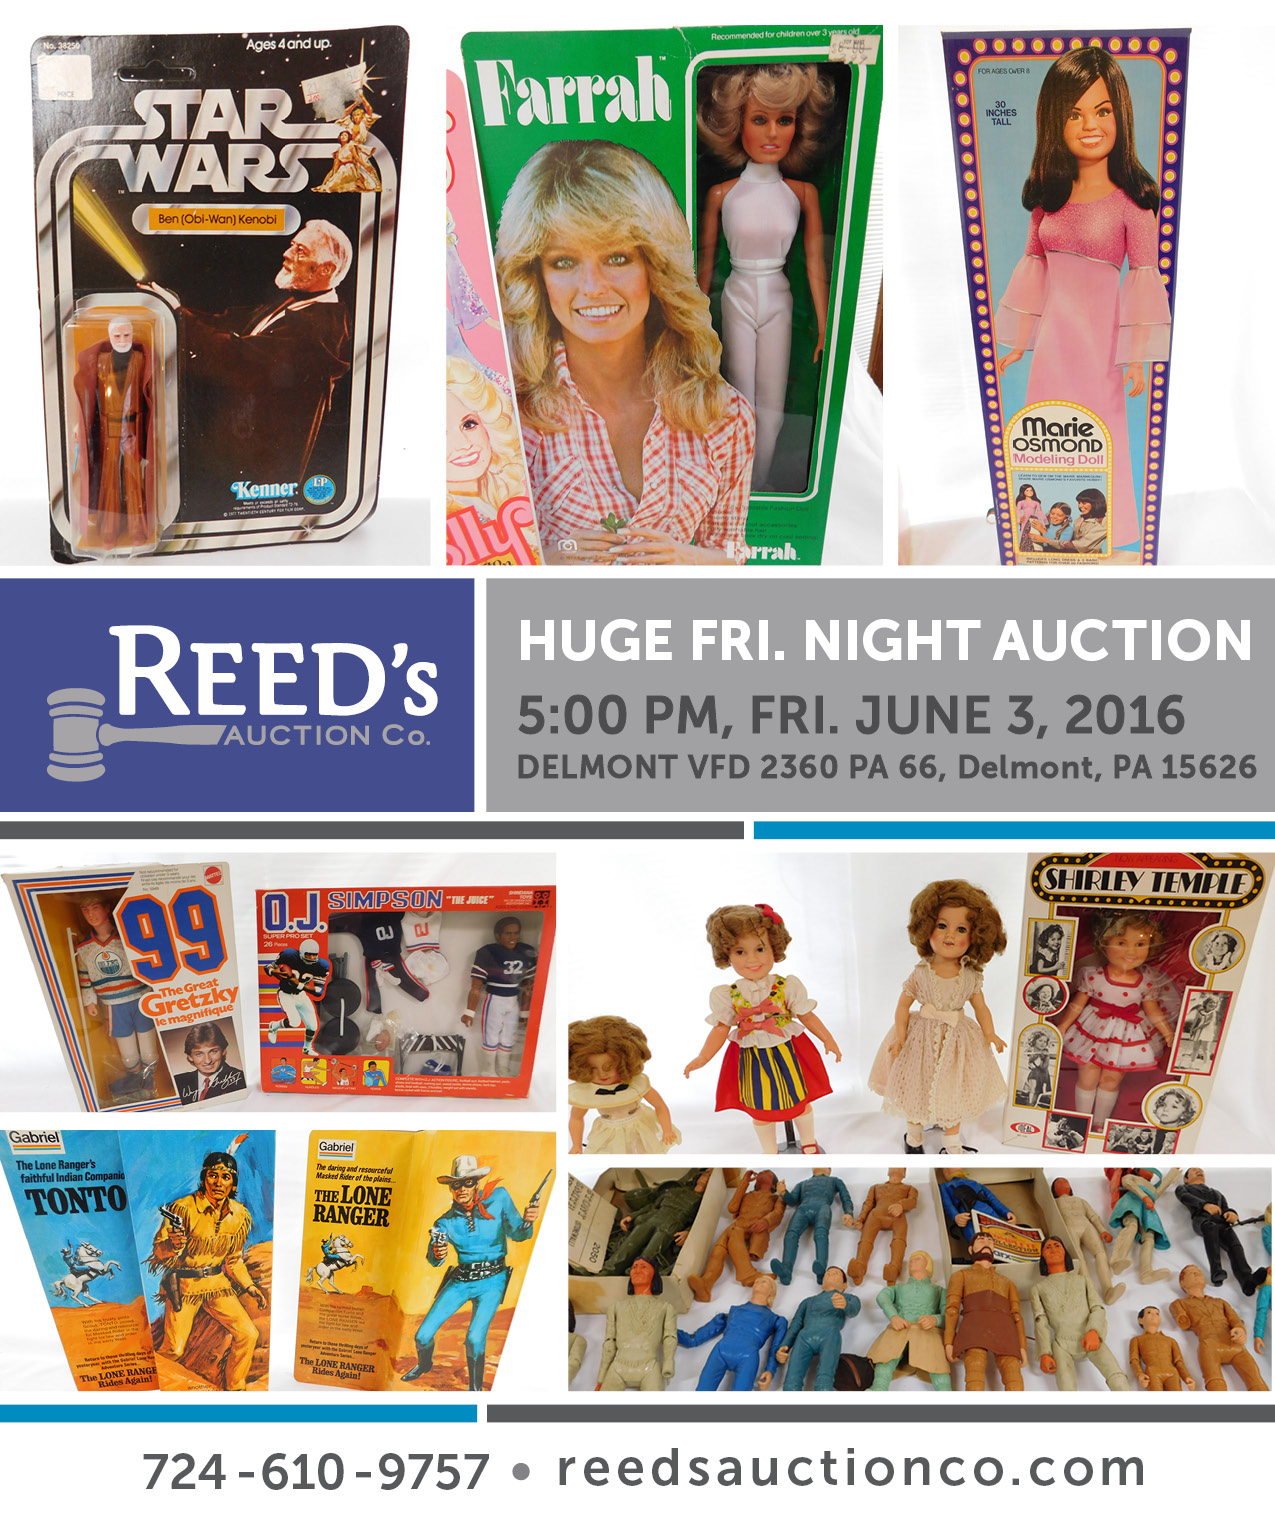 FB Reeds Auction 6-3-16_2.jpg